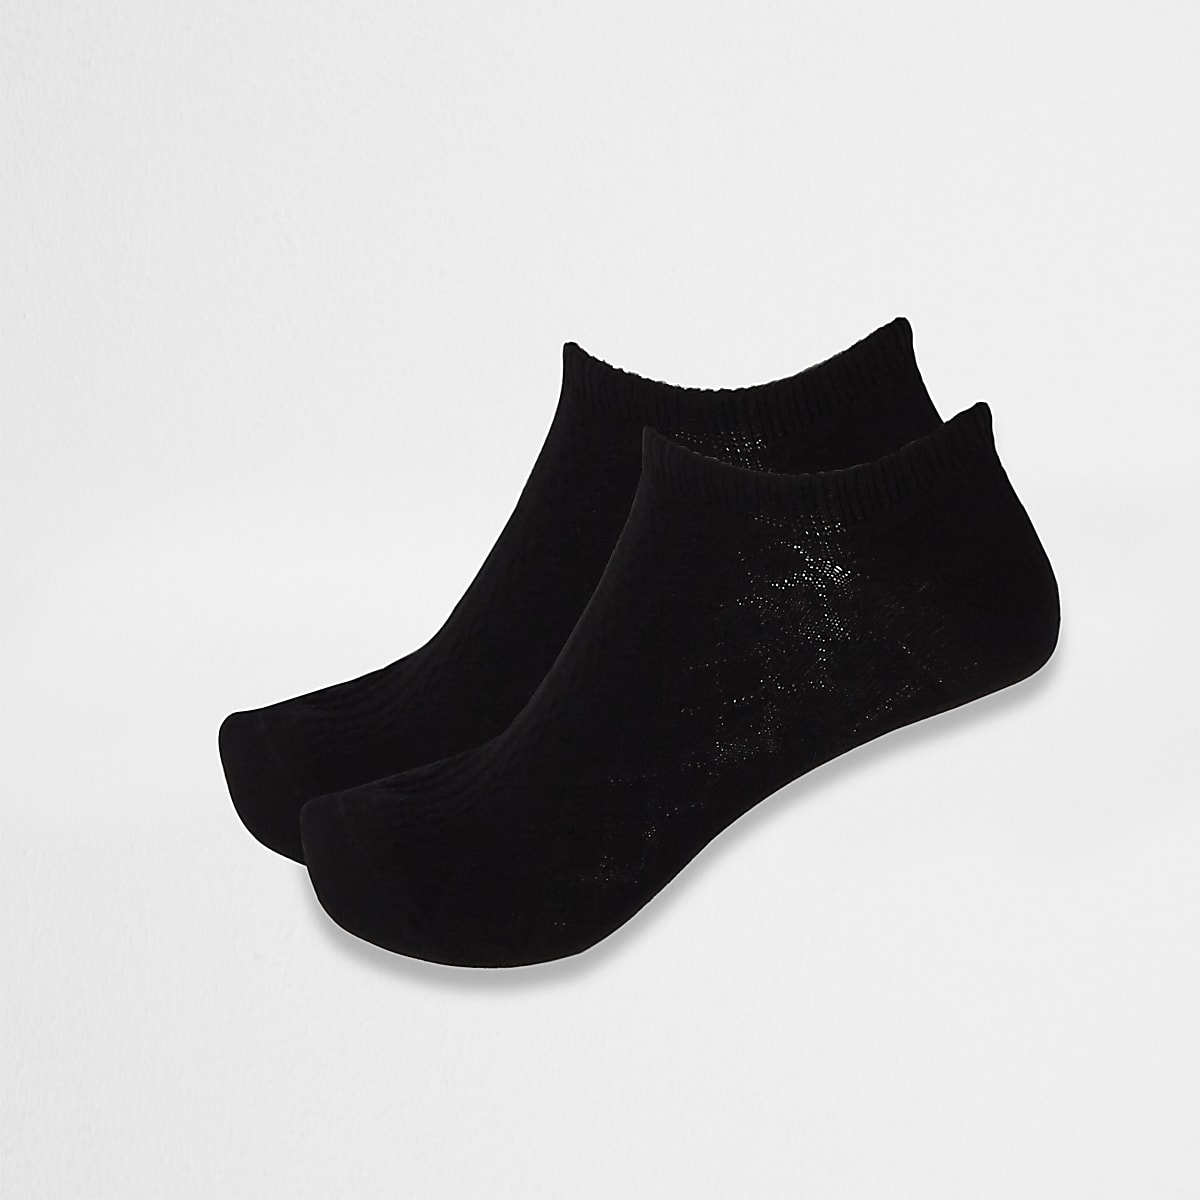 Black cable knit ankle socks 2 pack